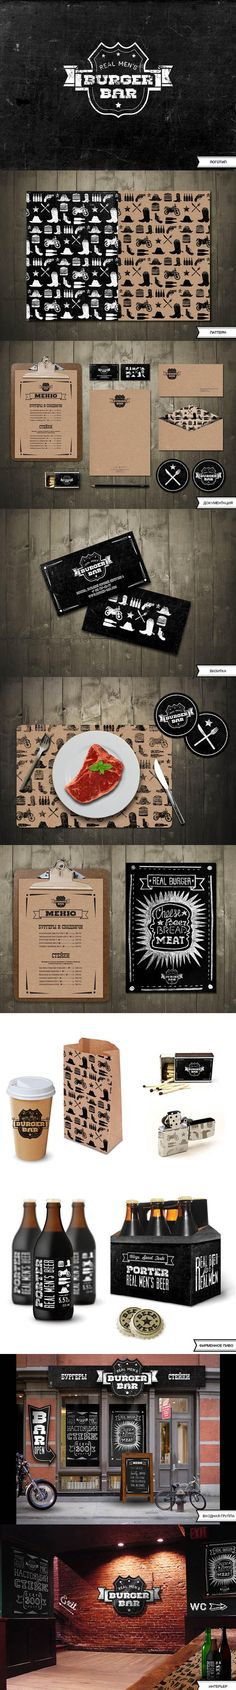 identity / REAL MEN'S BURGER BAR by Masha Solyankina